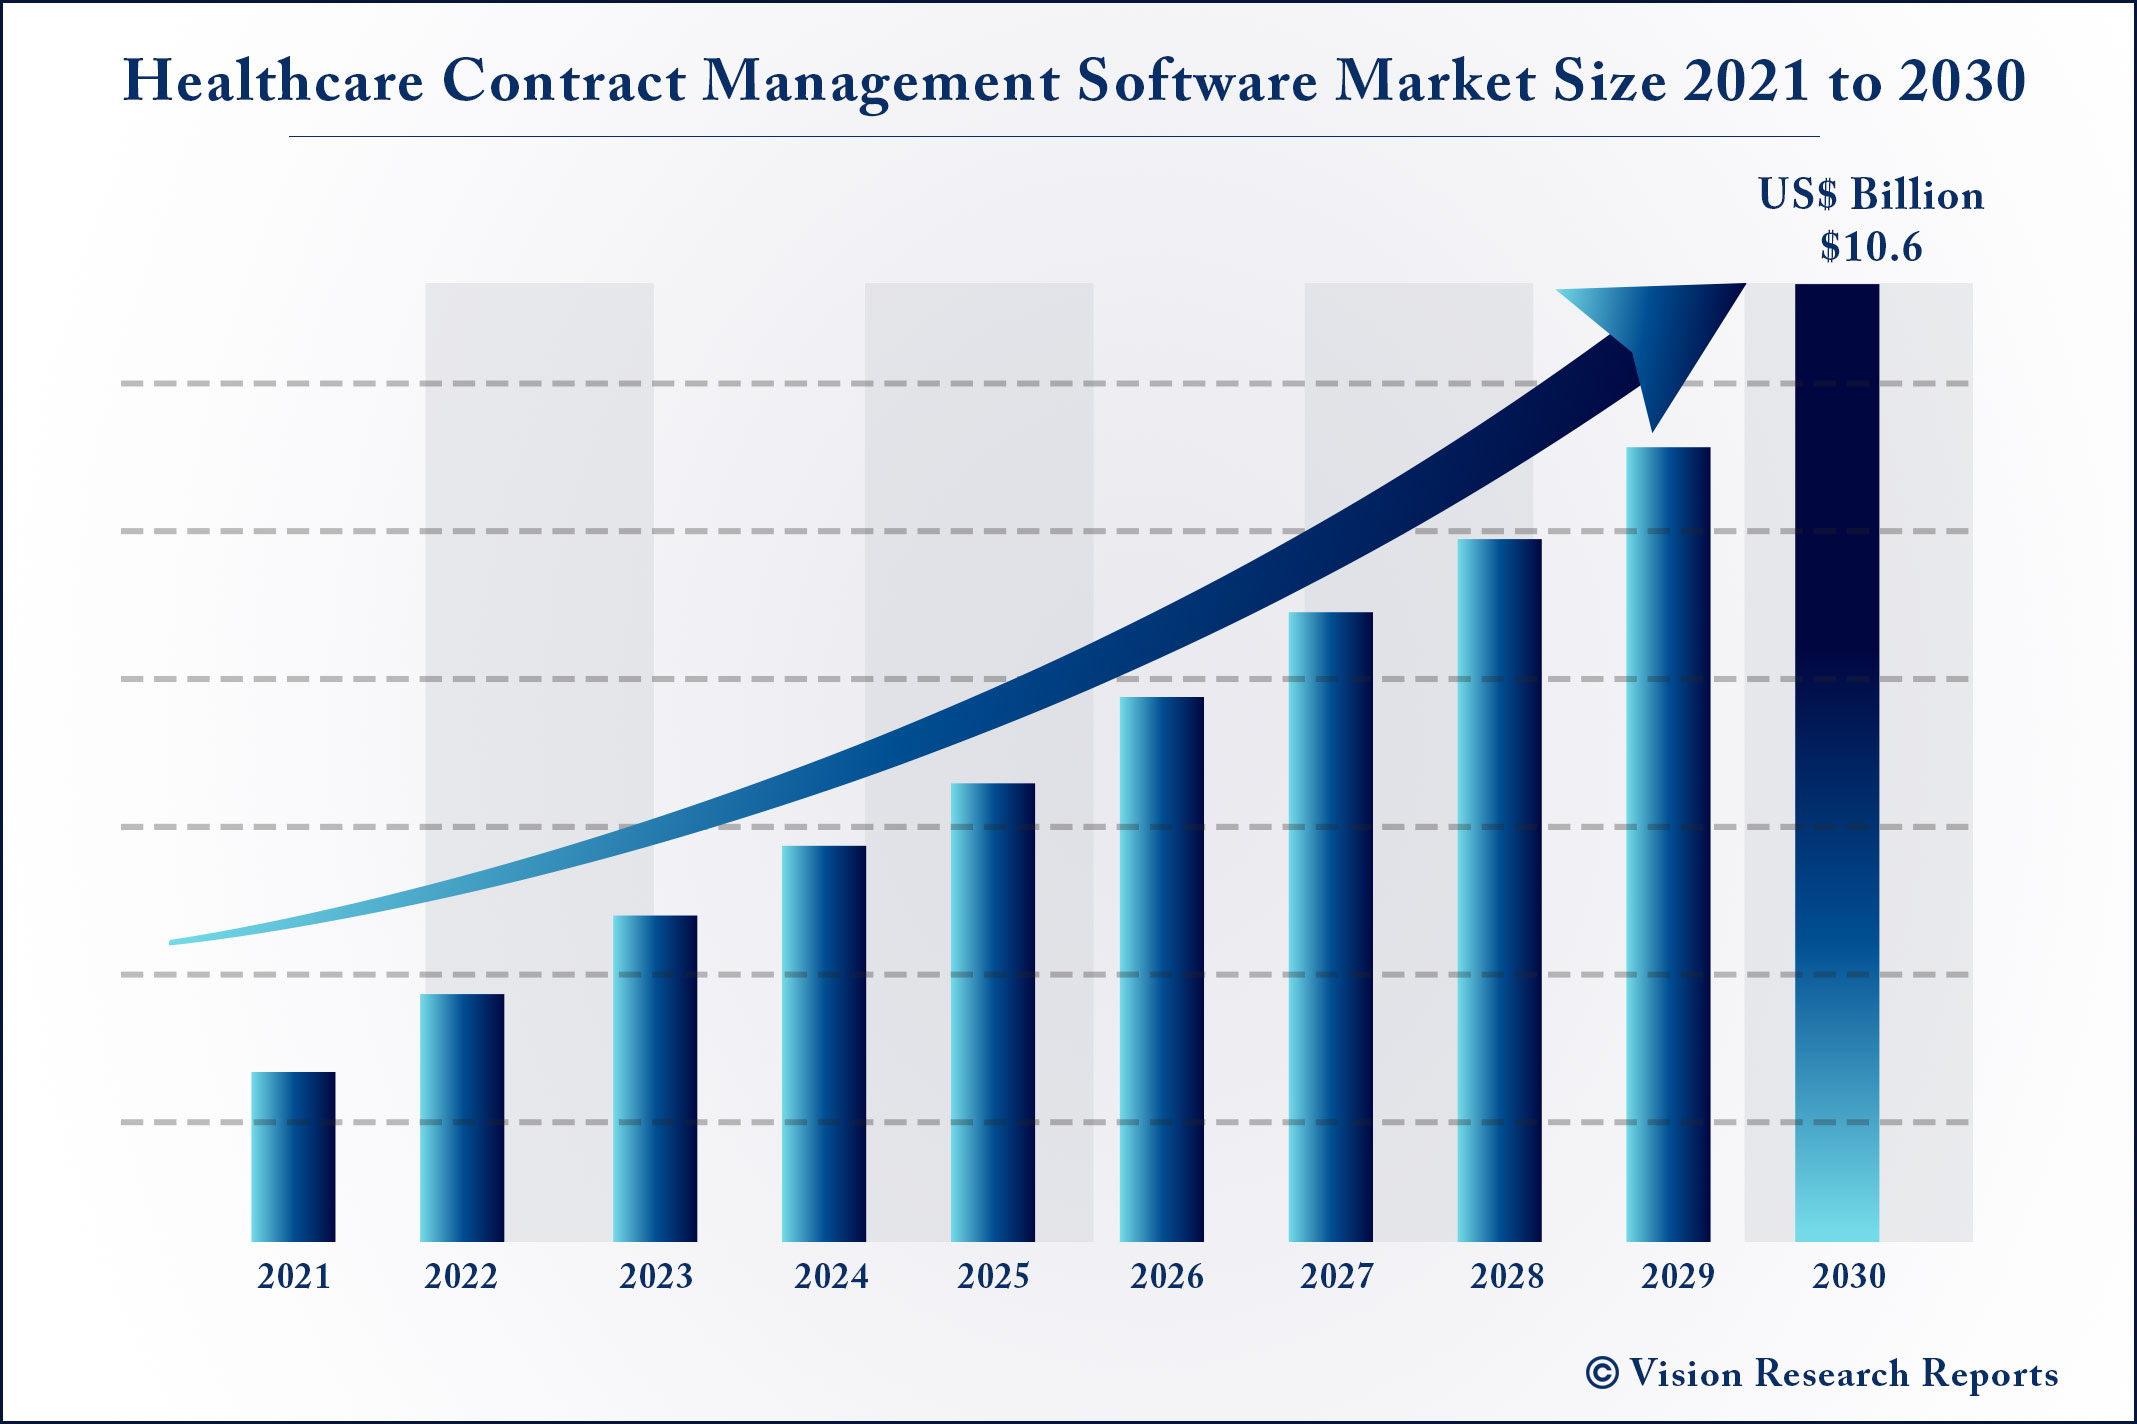 Healthcare Contract Management Software Market Size 2021 to 2030